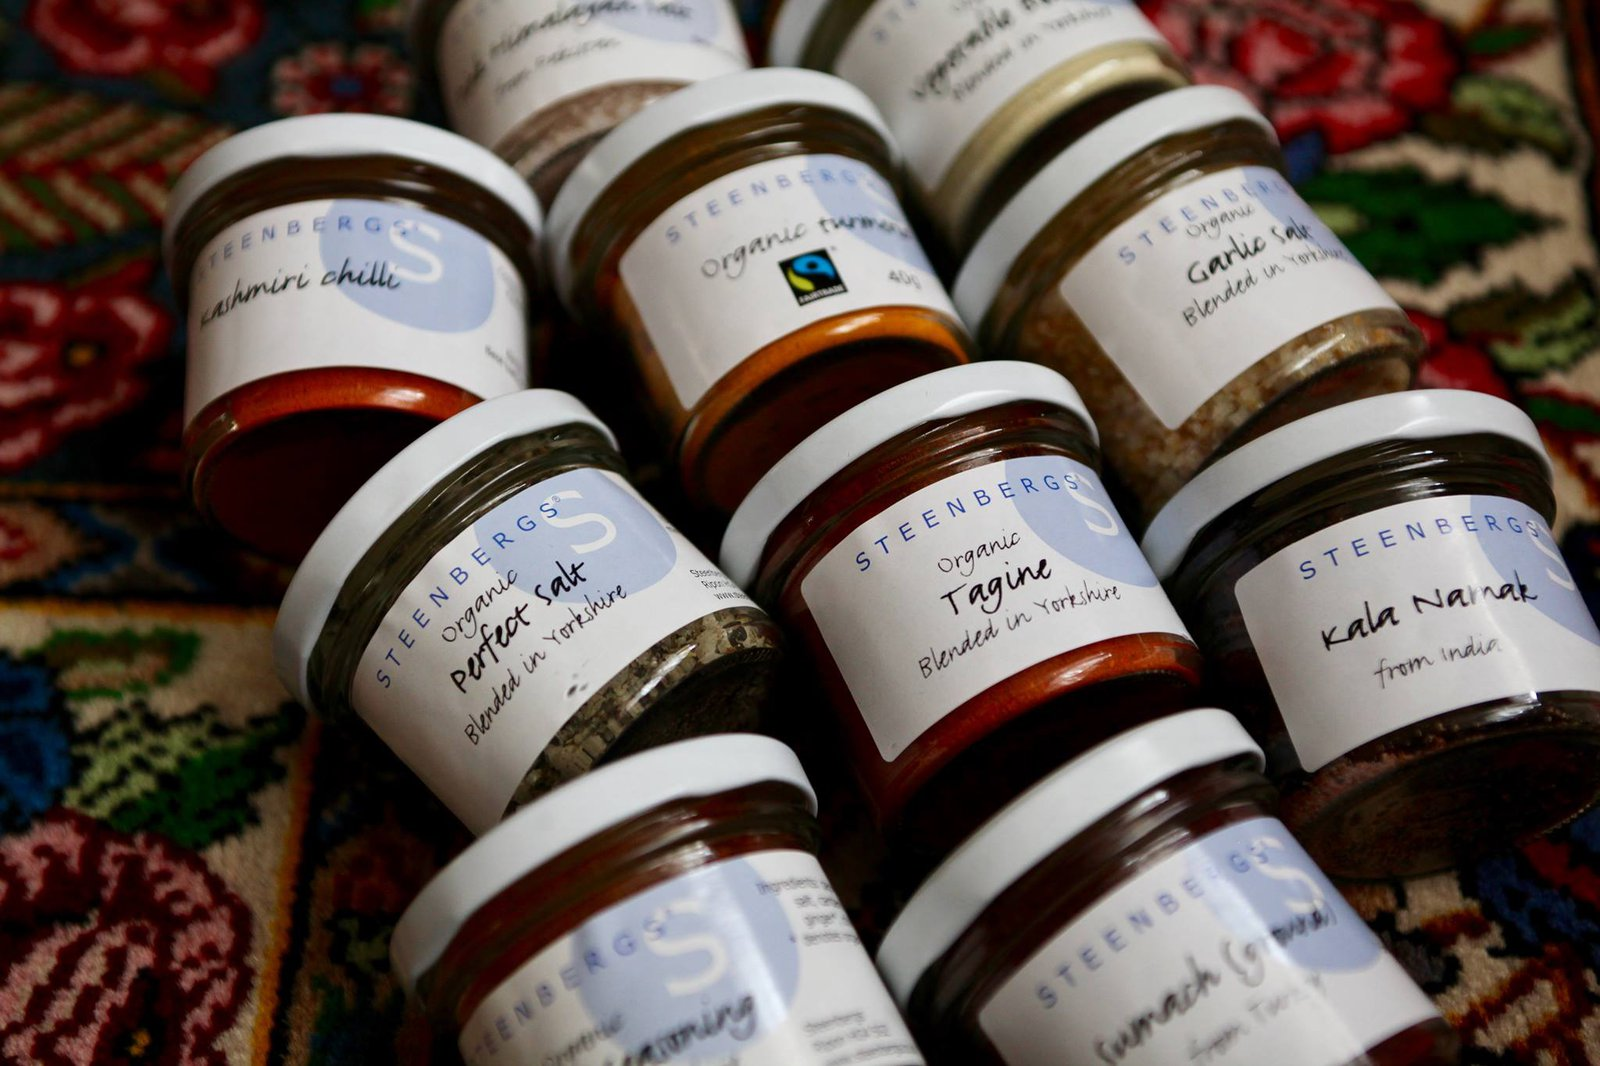 Steenbergs have a range of  over 500 organic spices, salt blends, Fairtrade spices.